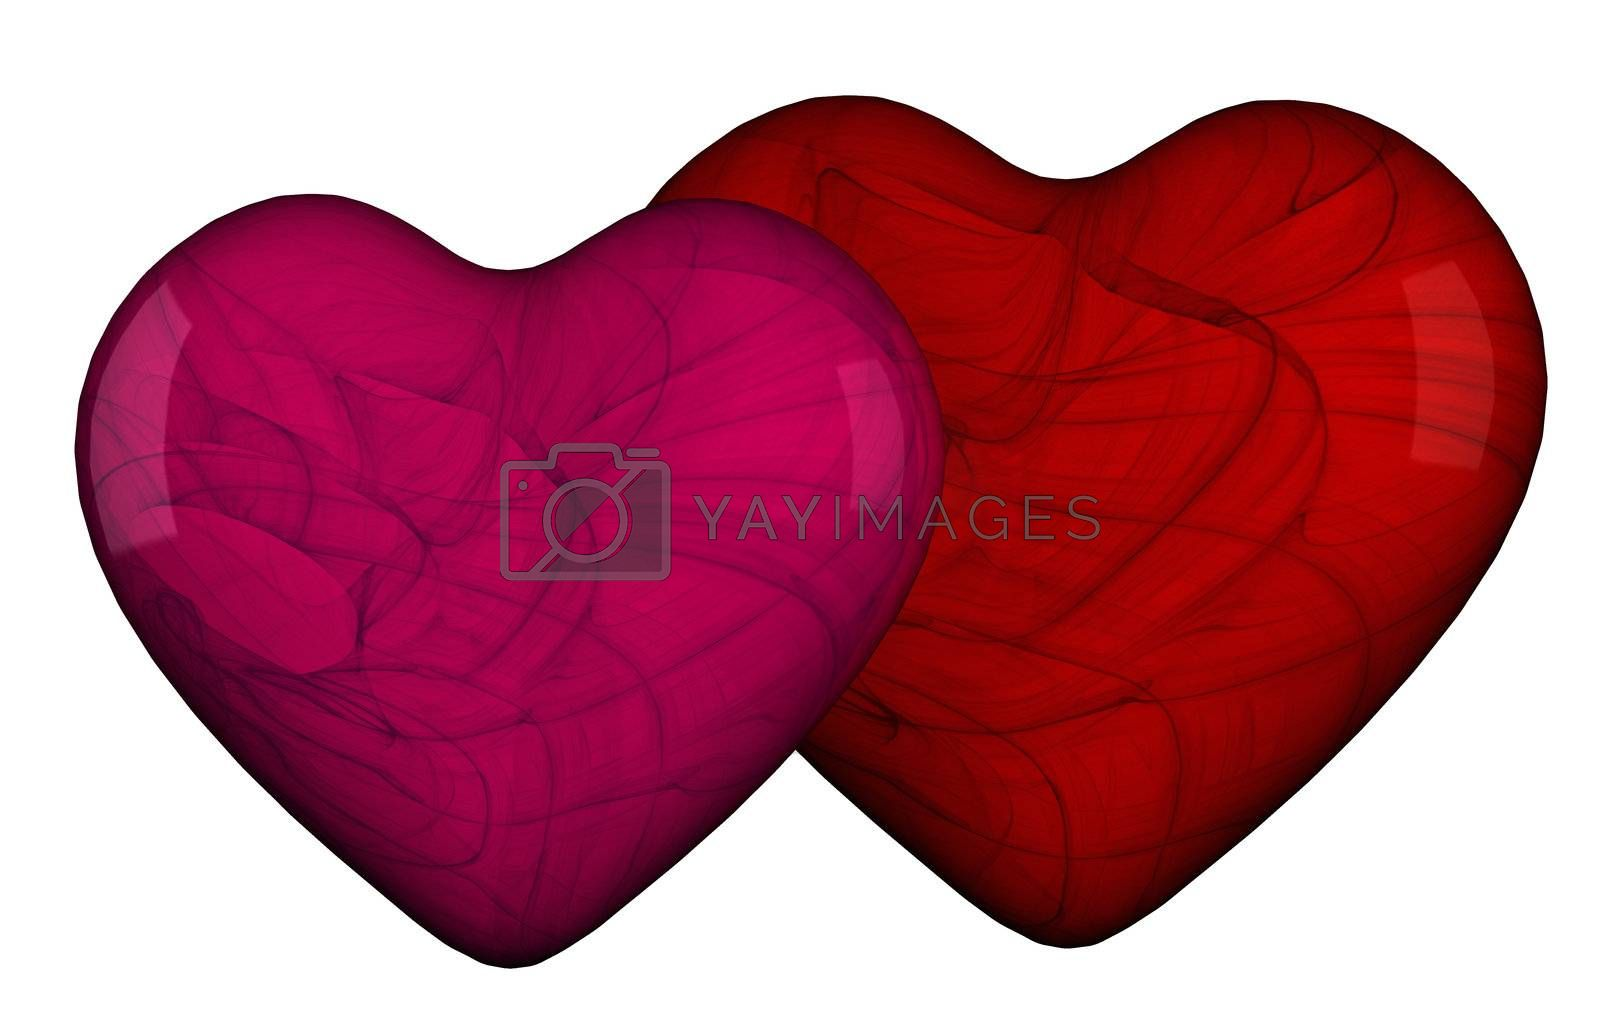 Two hearts shape in red and pink with textures